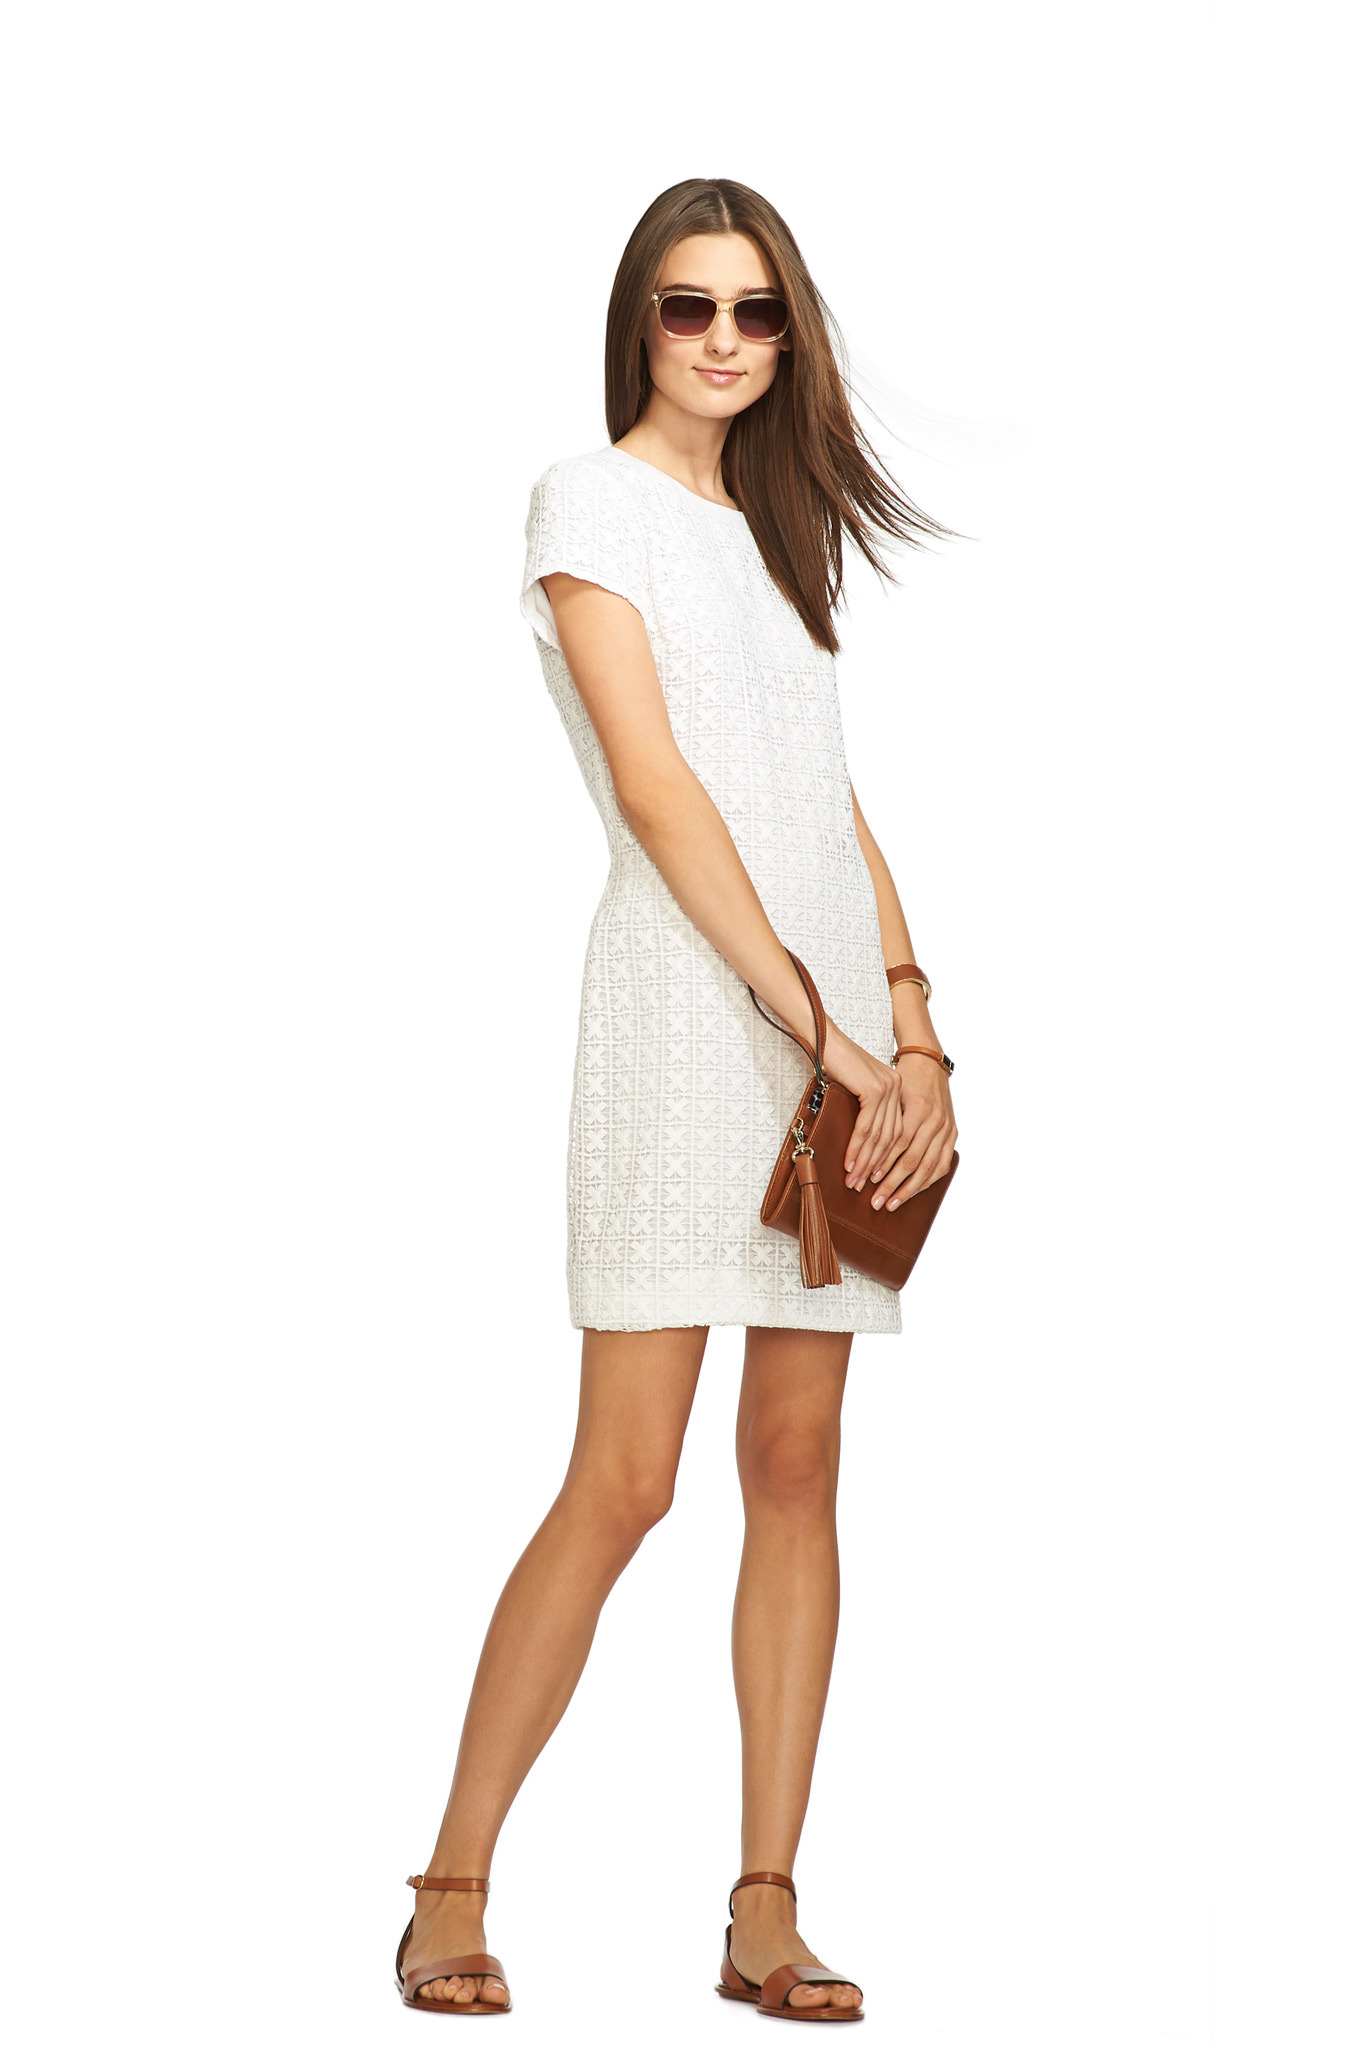 Banana republic resort wear dress for Banana republic wedding dresses